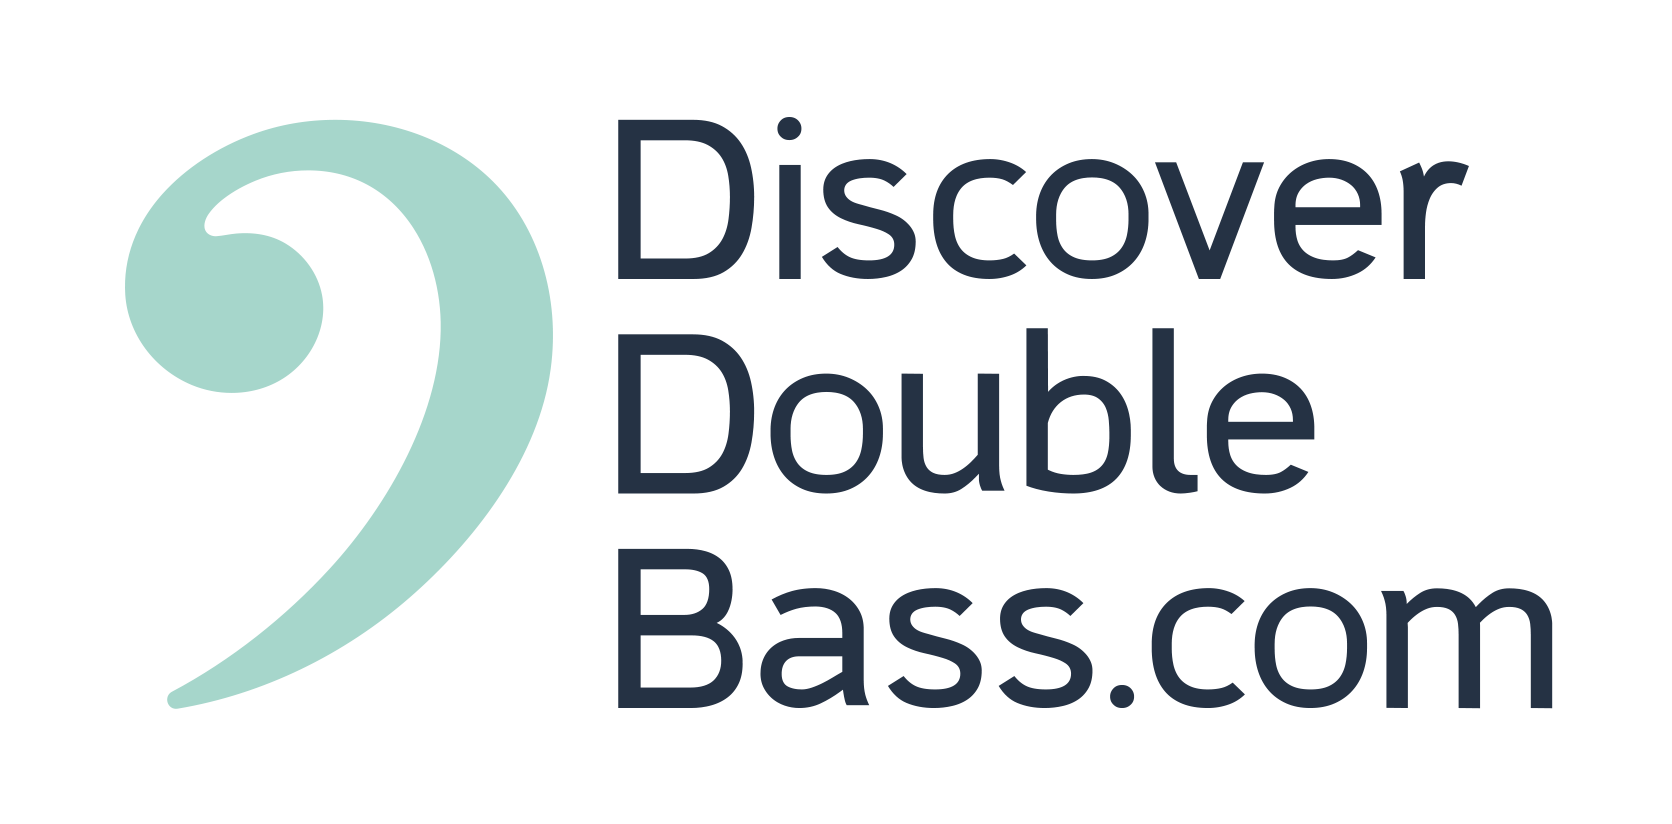 Discover Double Bass